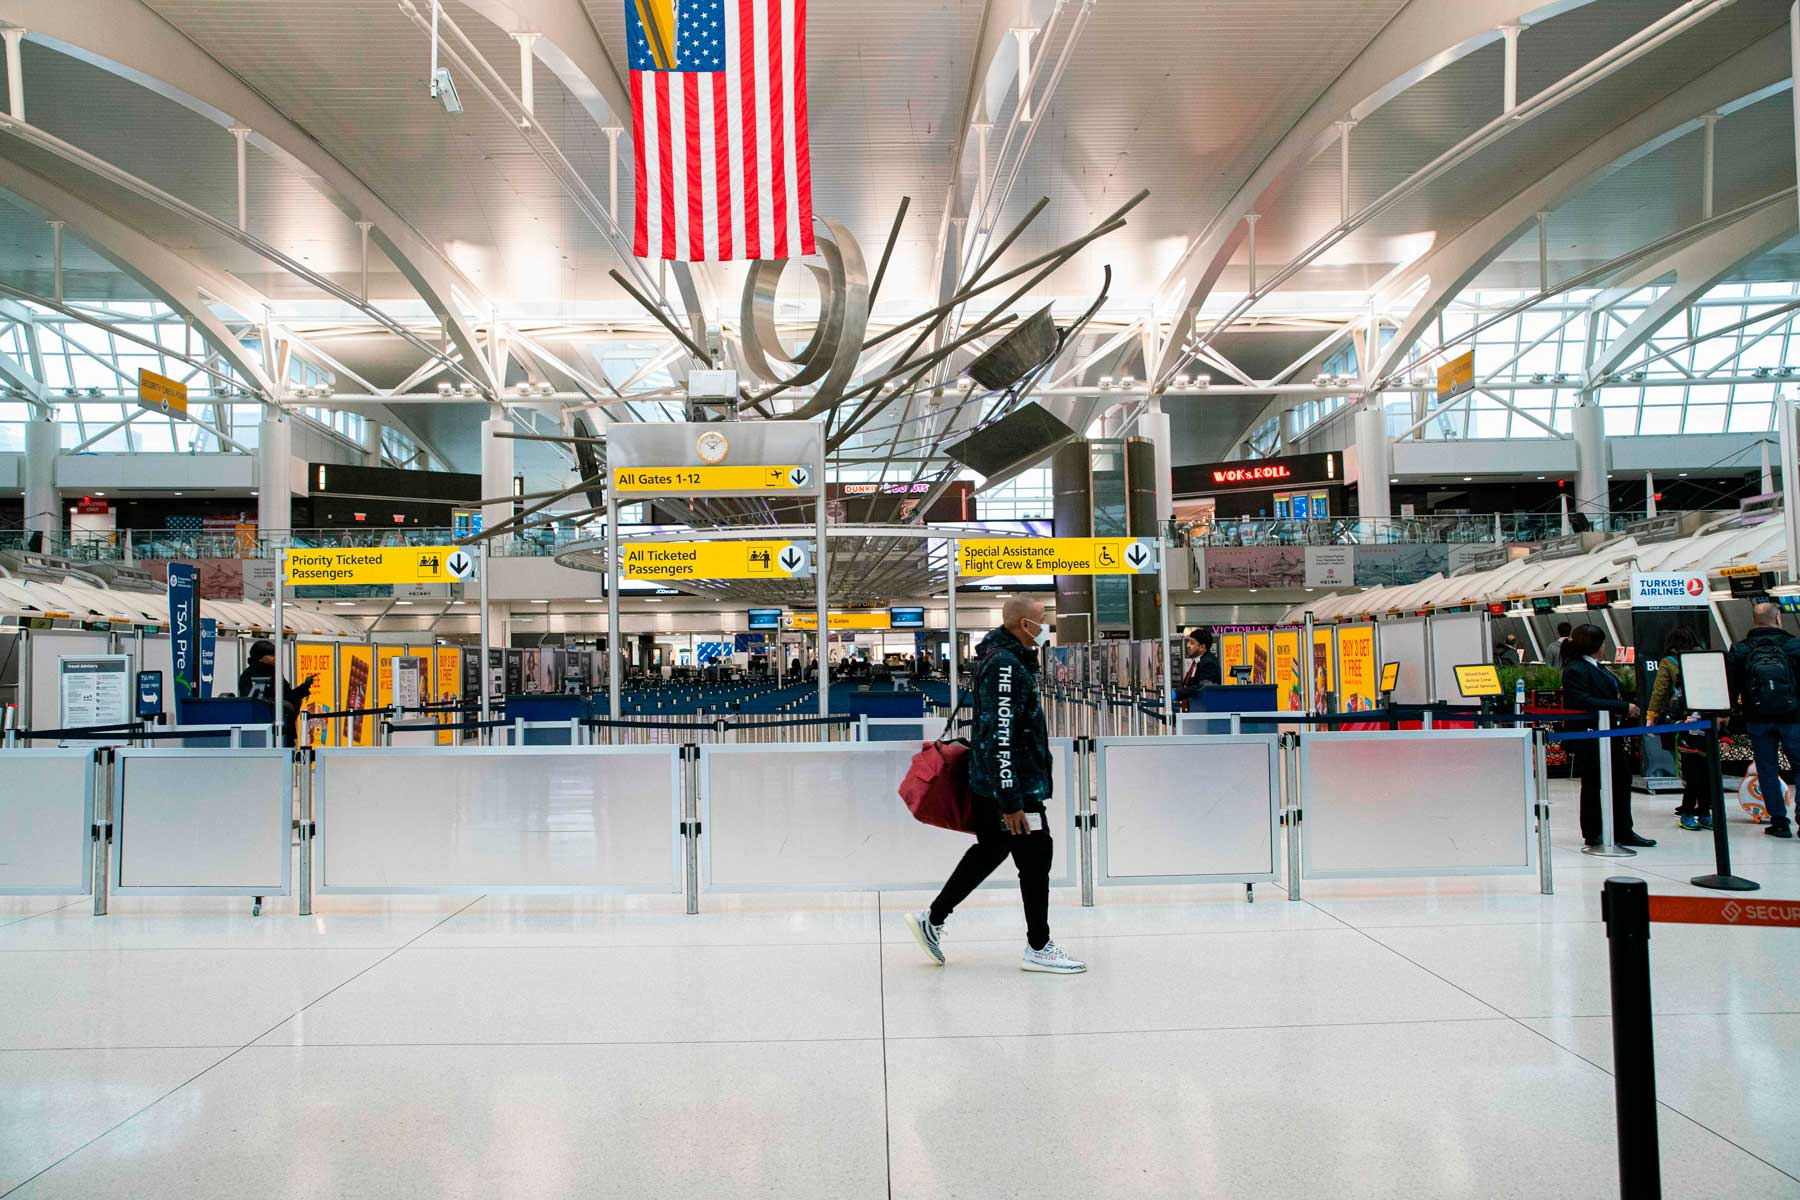 A man walks past counters at the Terminal 1 section at John F. Kennedy International Airport on March 12, 2020 in New York City